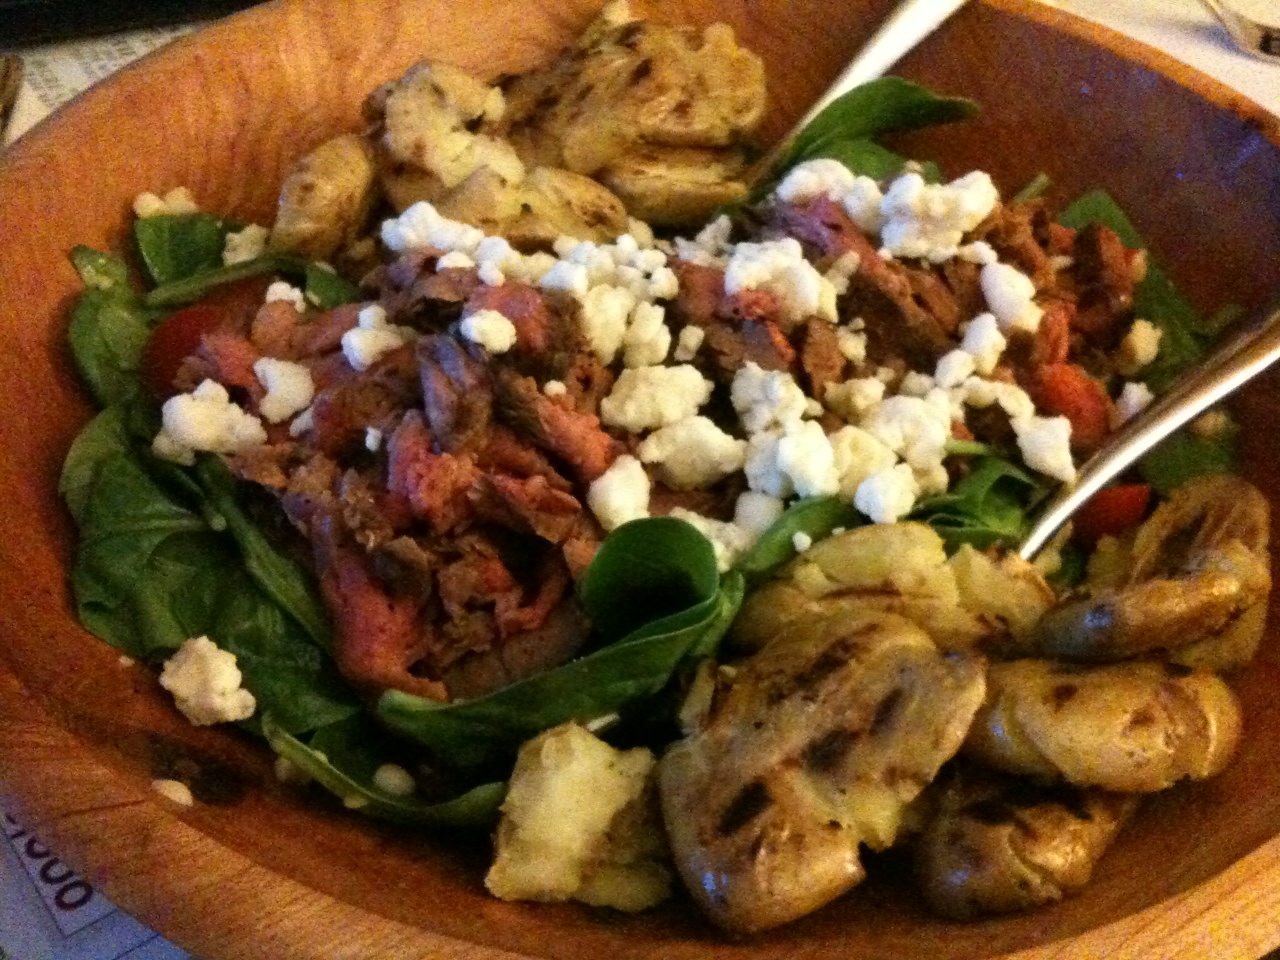 Steak Salad with Corn, Tomatoes, and Grilled Potatoes